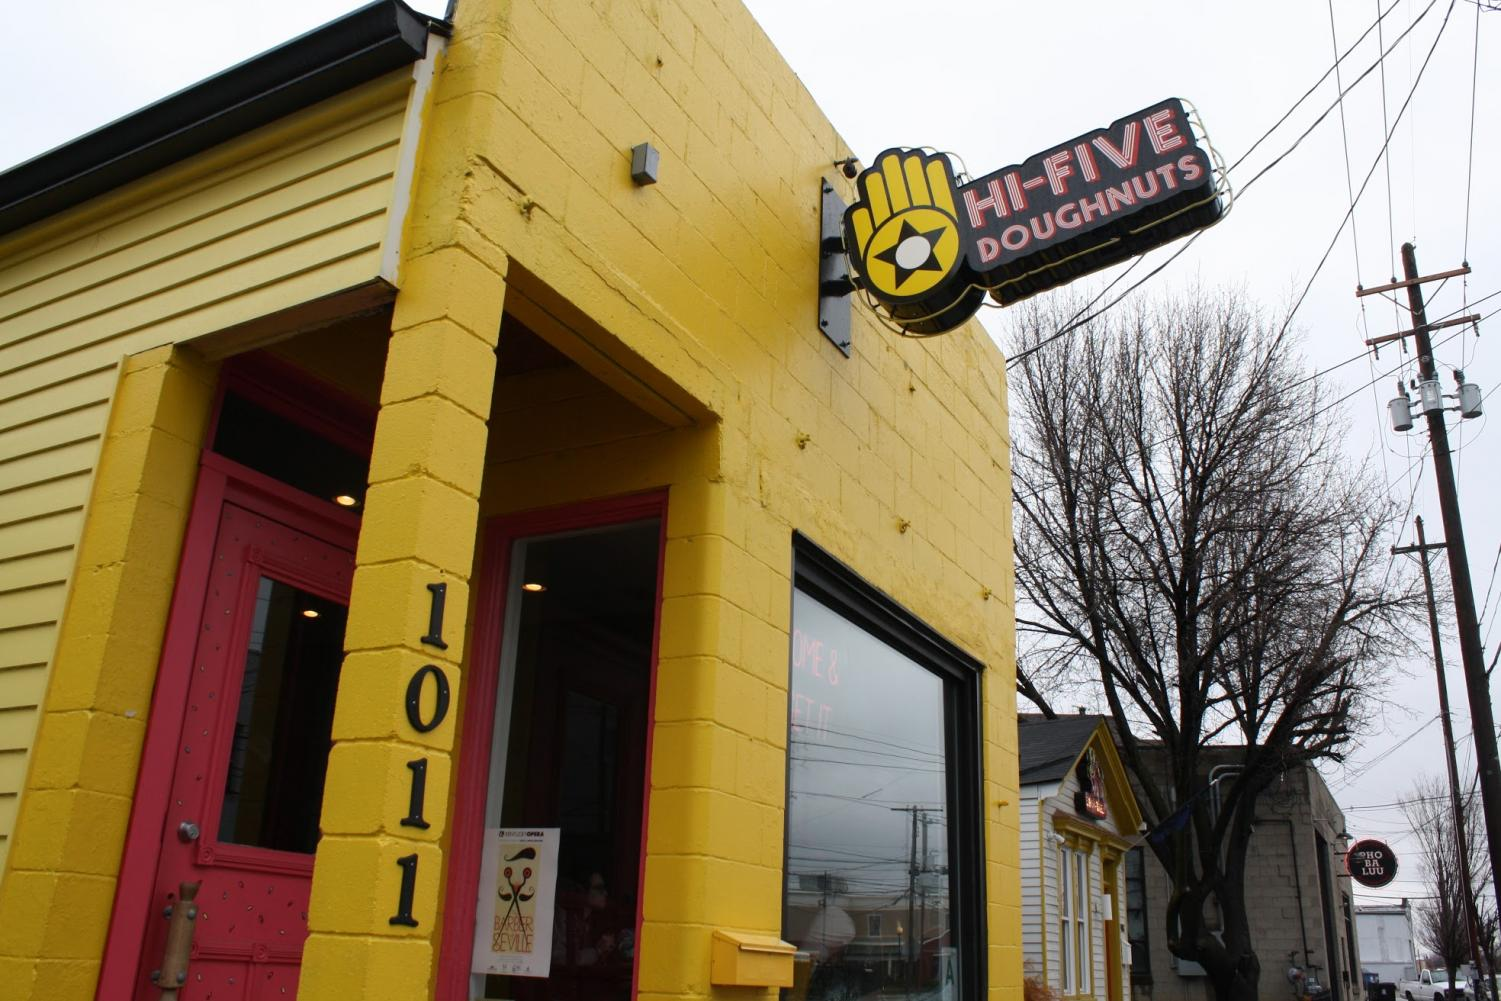 Hi-Five Doughnuts is Louisville's first female owned and operated doughnut storefront. Located on 1011 East Main Street in Butchertown, the shop is an especially popular spot for locals with its bright colors and delicious treats.